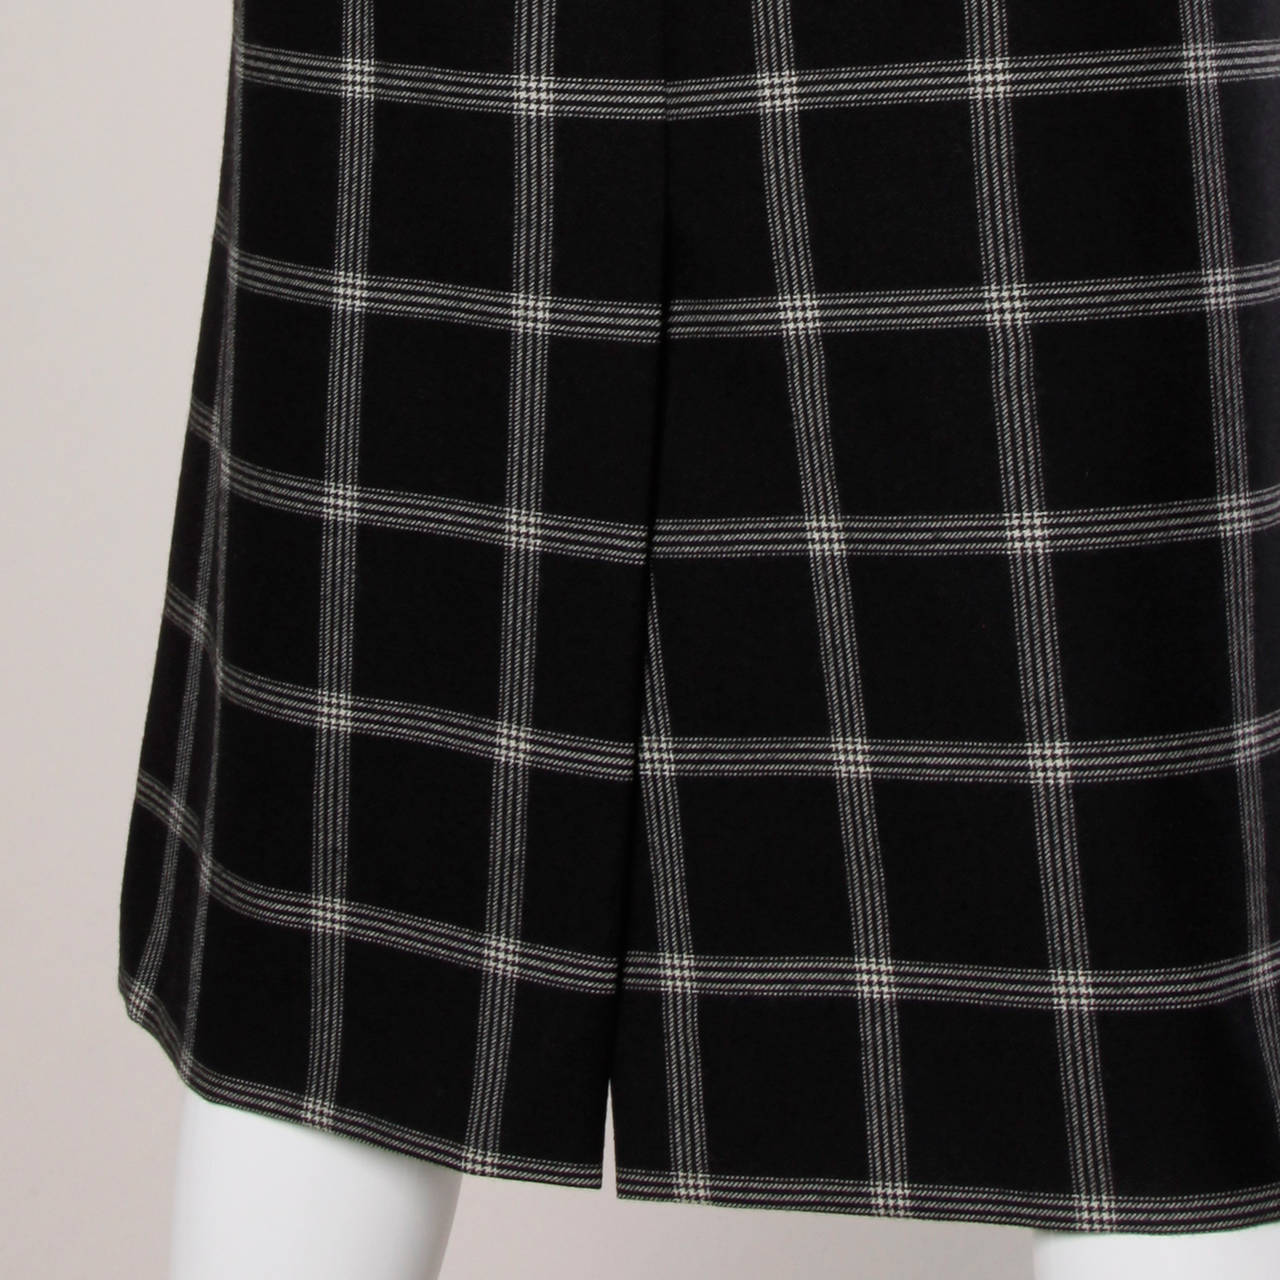 Koos Van Der Akker Vintage Black + White Plaid Wool Skirt 5